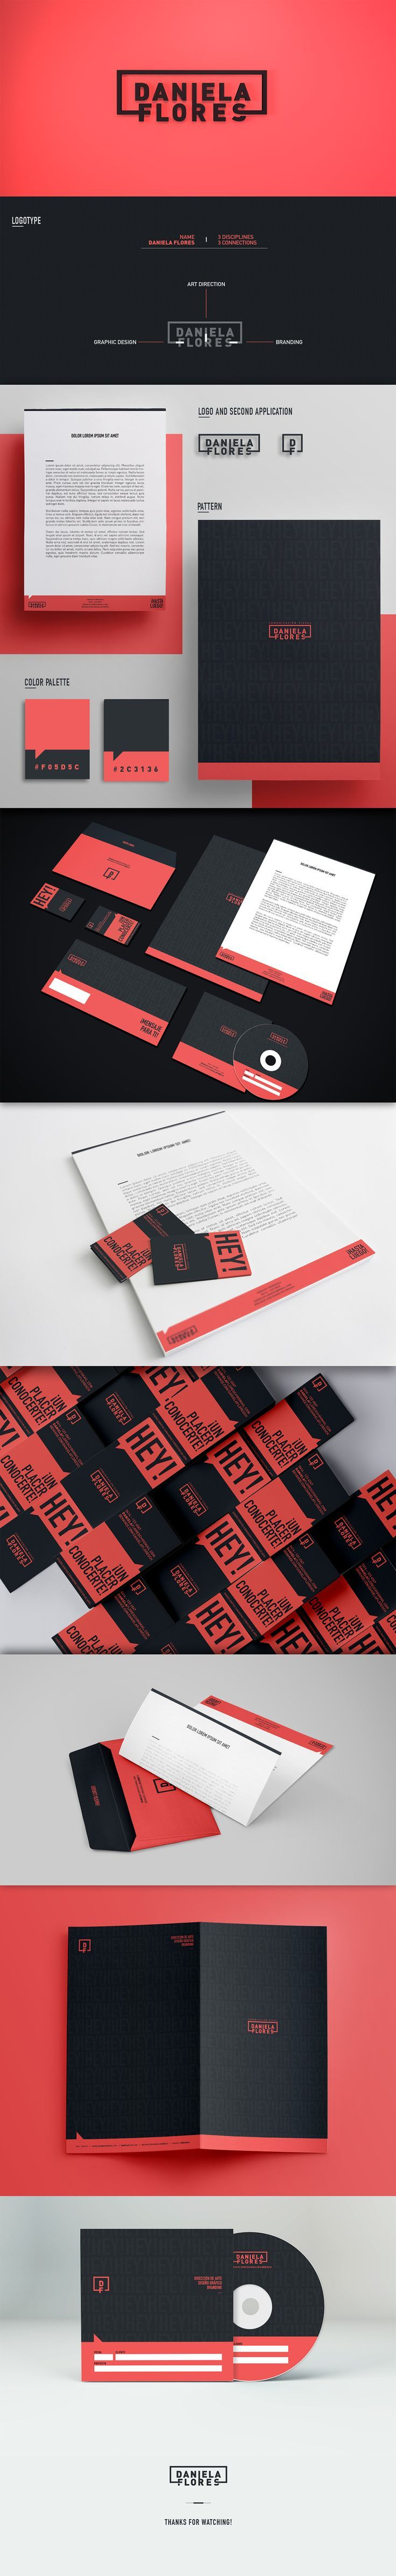 Personal Branding on Behance. If you're a user experience professional, listen to The UX Blog Podcast on iTunes.